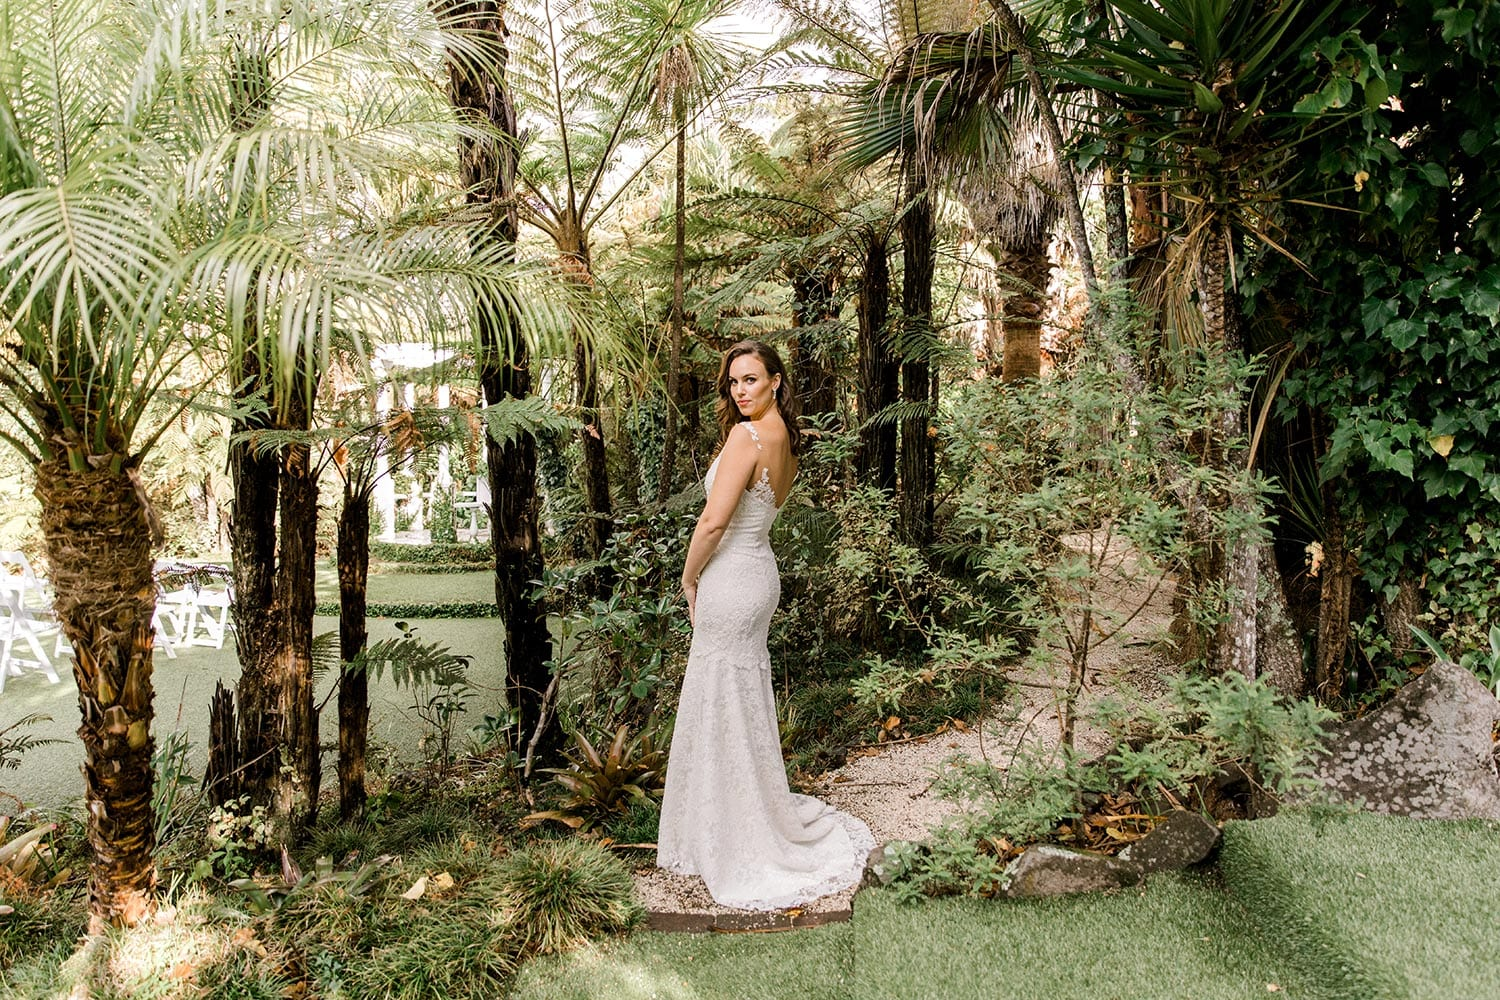 Dakota Wedding Dress from Vinka Design. This full-lace wedding dress is form fitting, sculpting the body beautifully. Delicate beaded lace flowers are hand-appliqued up the sheer nude tulle straps on both the front & back. Full length landscape with model turned away showing detail on back of dress, photographed at Tui Hills by Emmaline Photography.